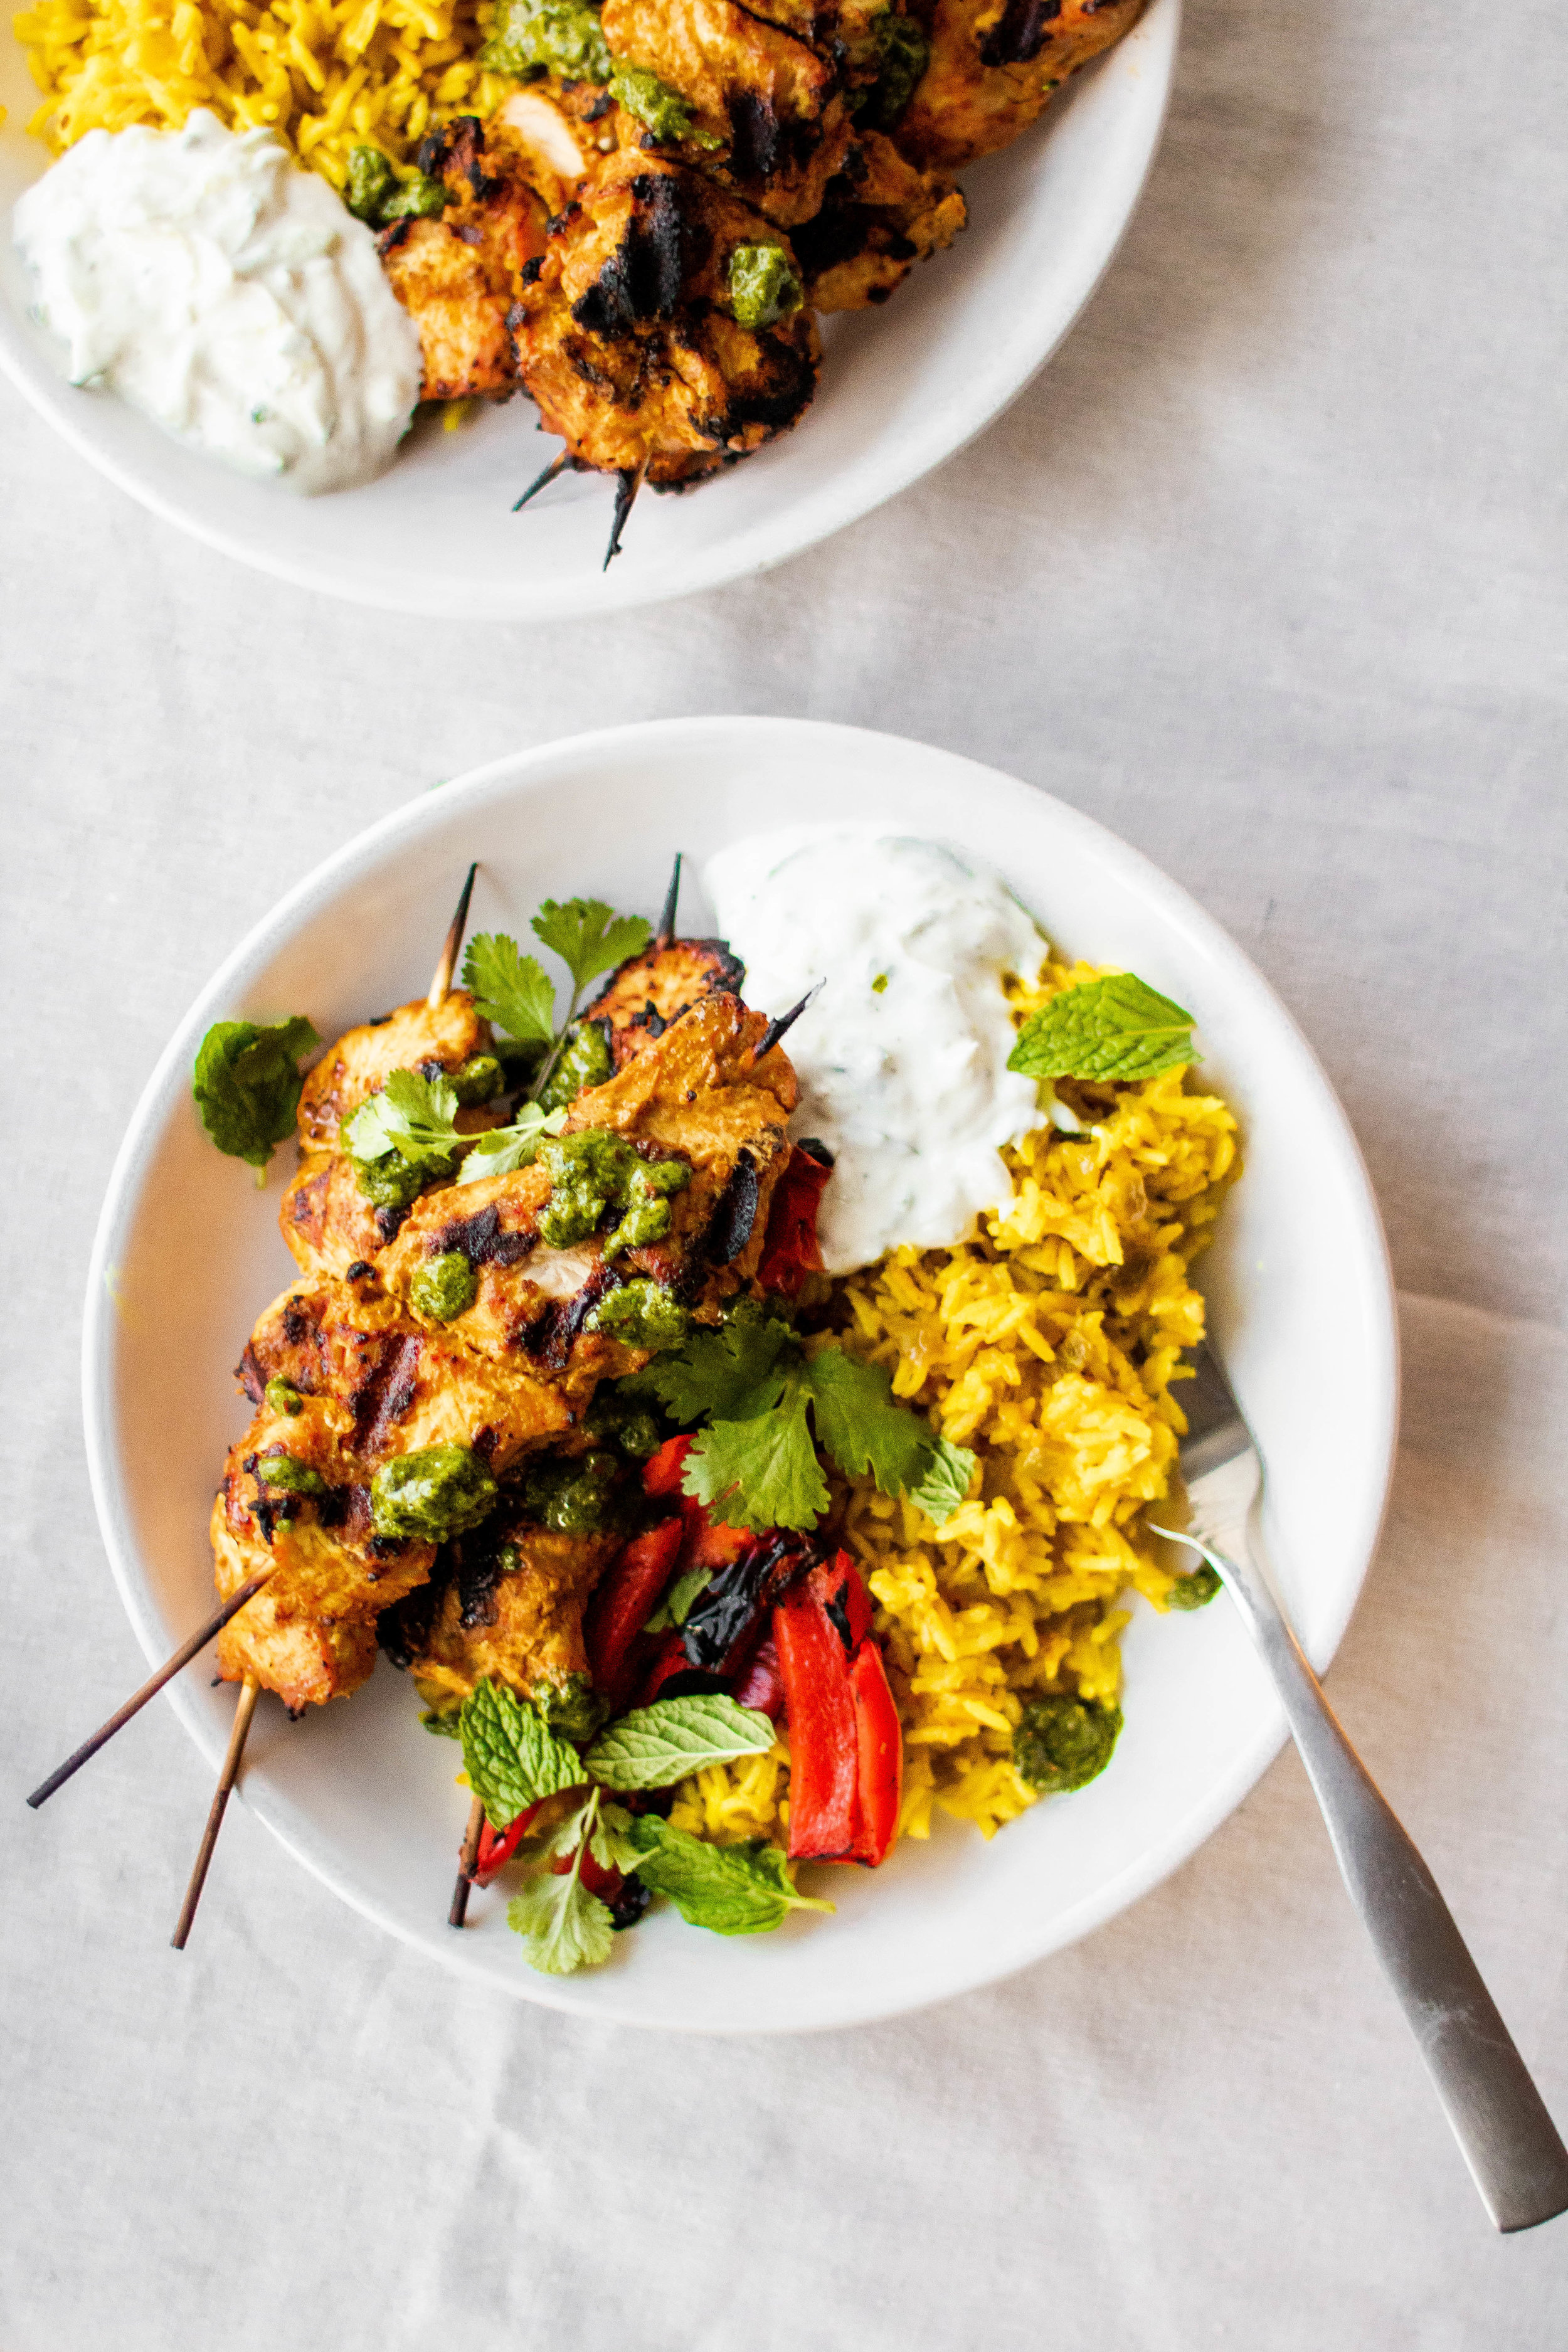 tandoori chicken6.jpg